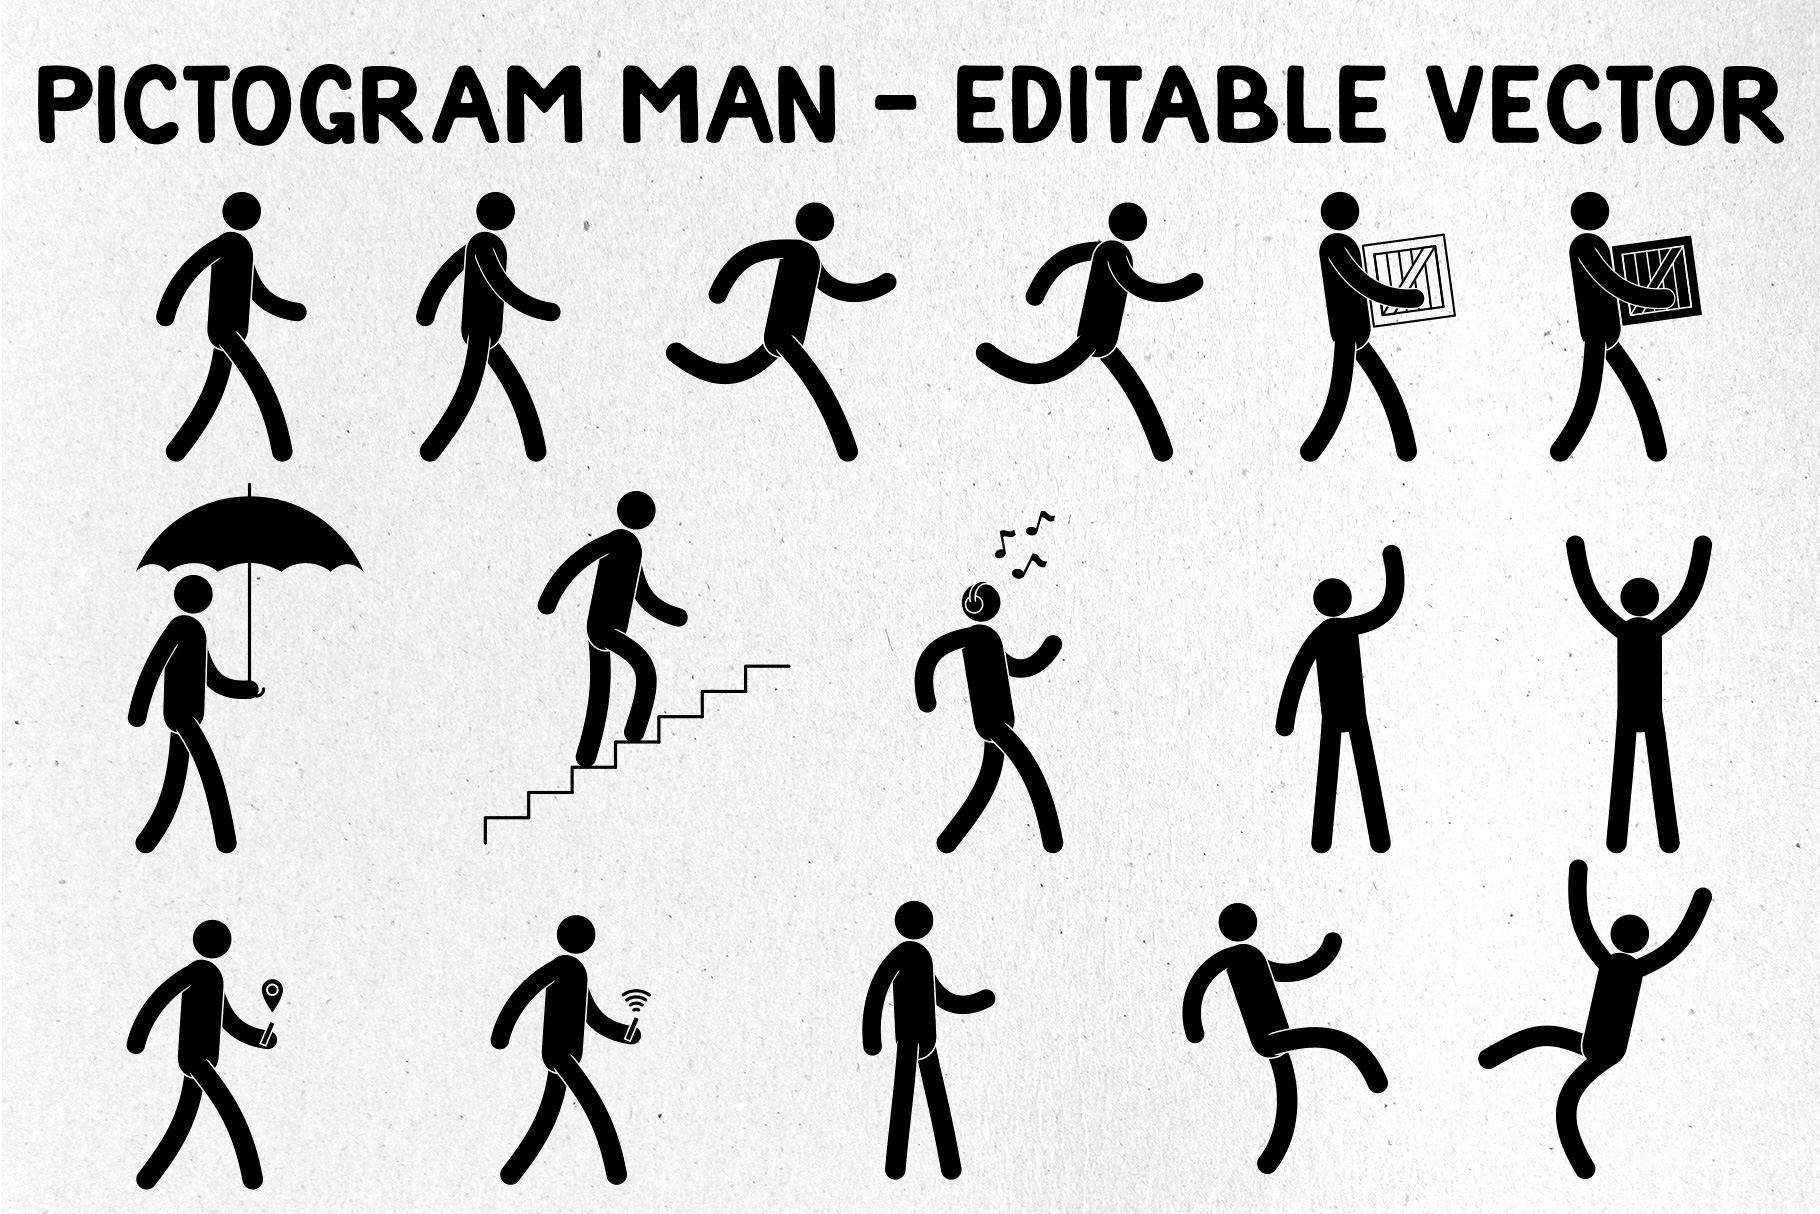 Pictogram Man Editable Poses example image 1